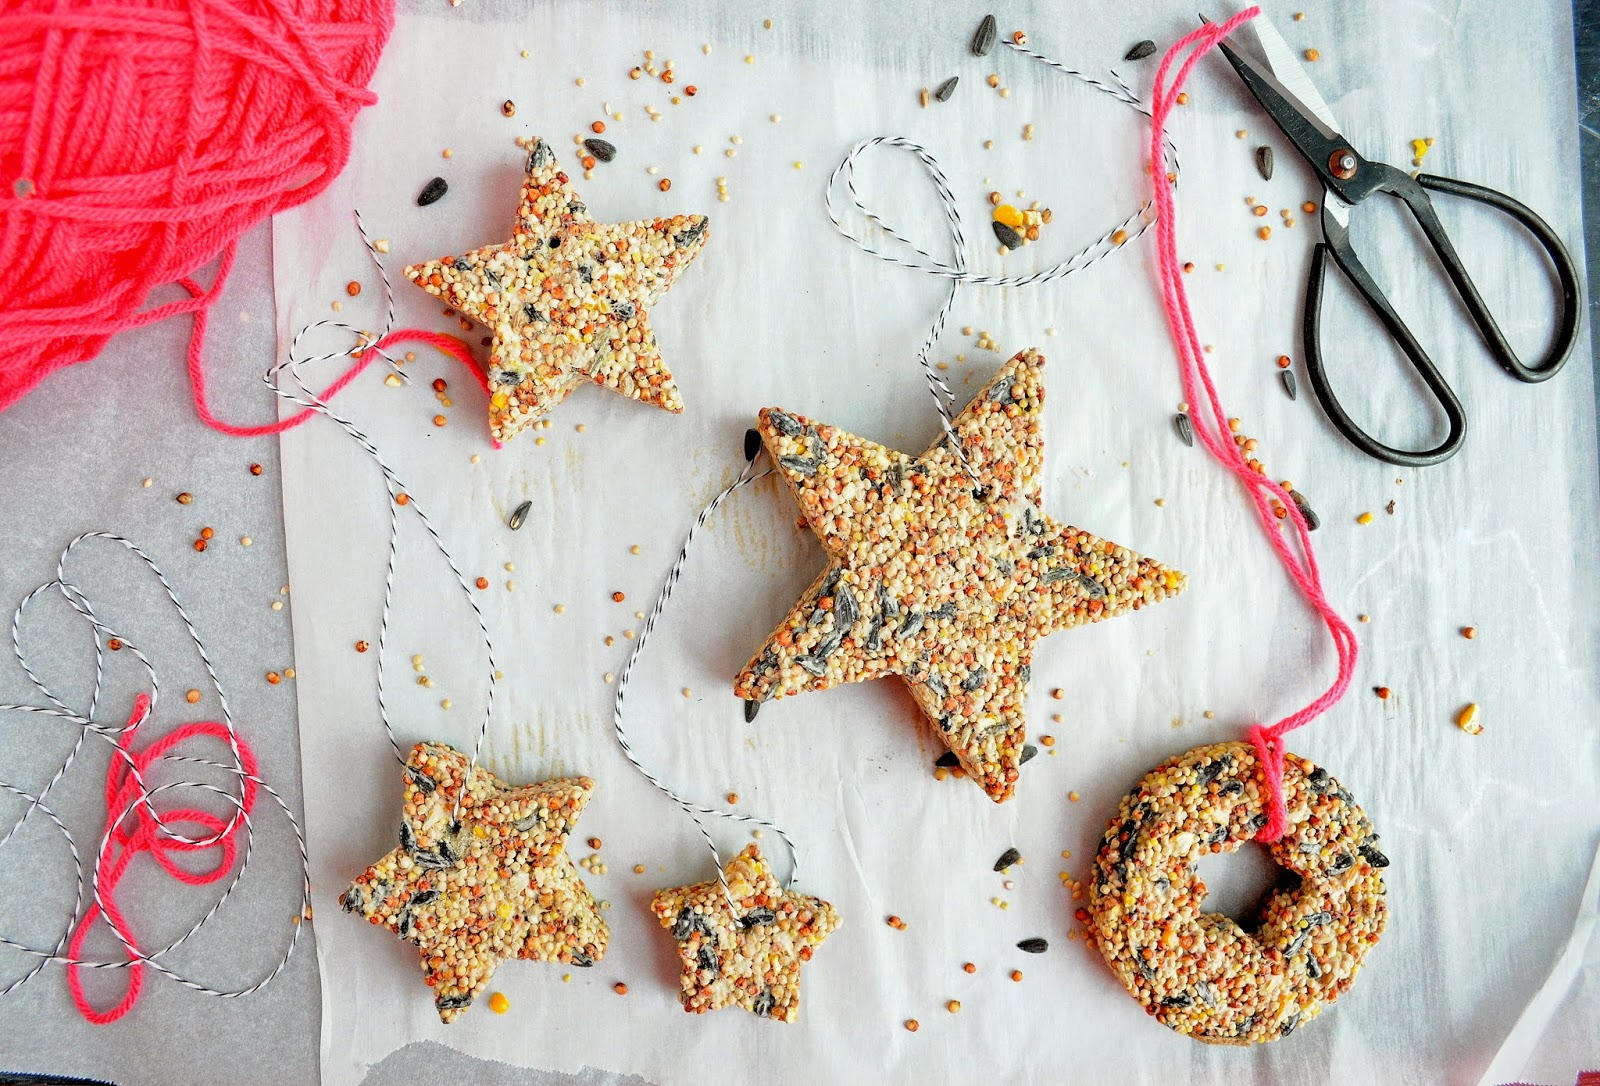 babiekins // craftykins // diy hanging birdseed feeder ornaments